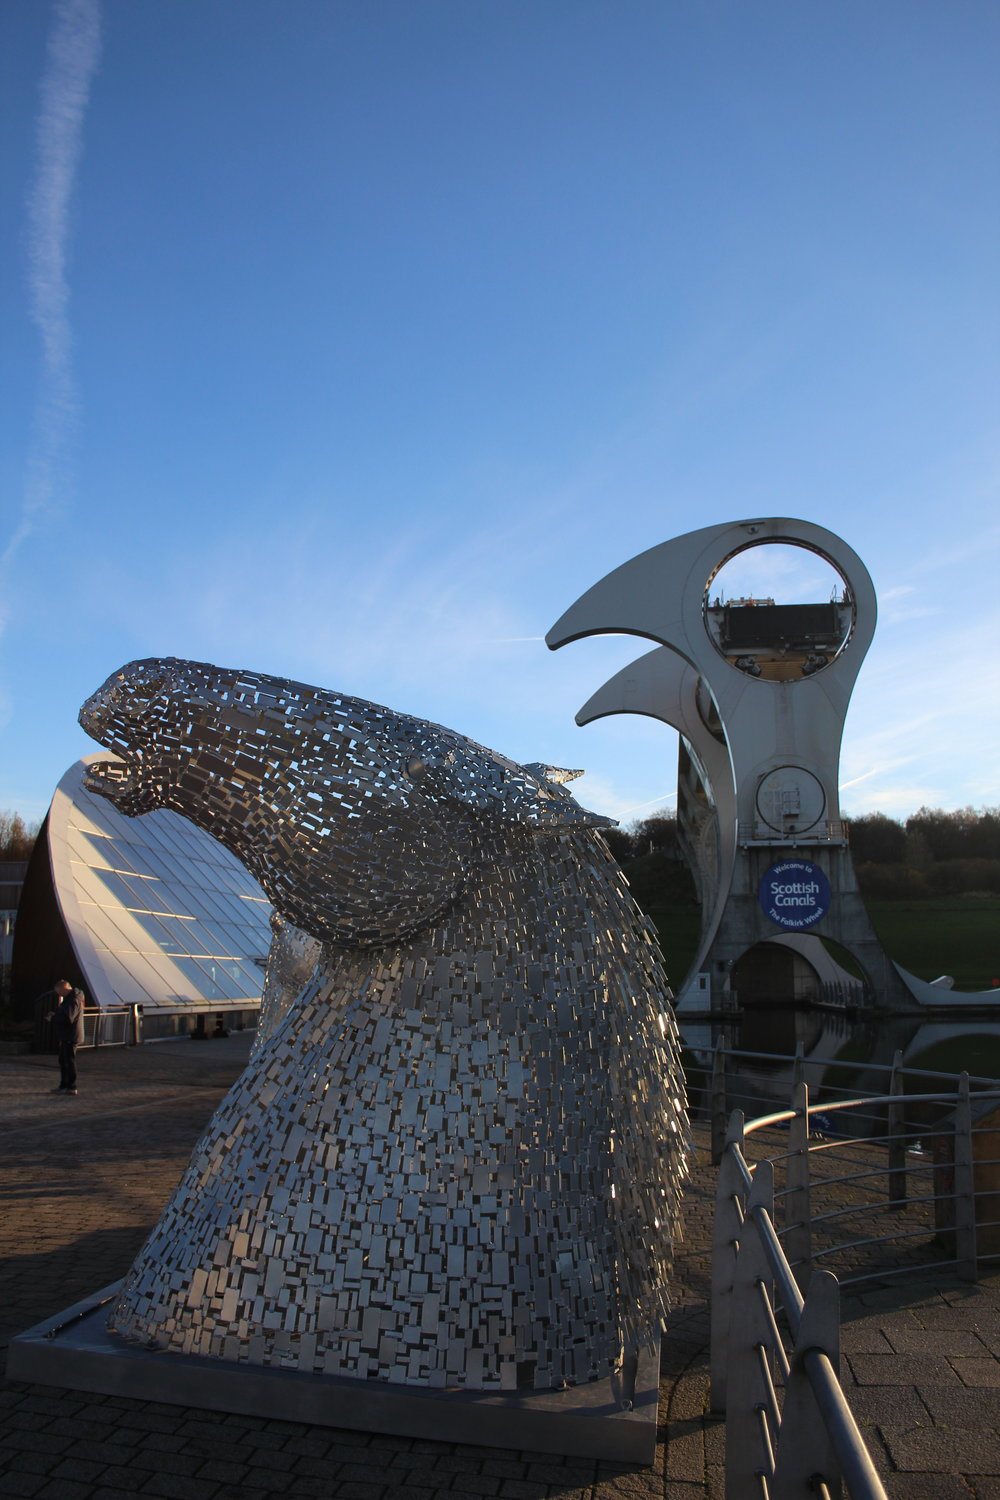 Falkirk Wheel and Mini Kelpies